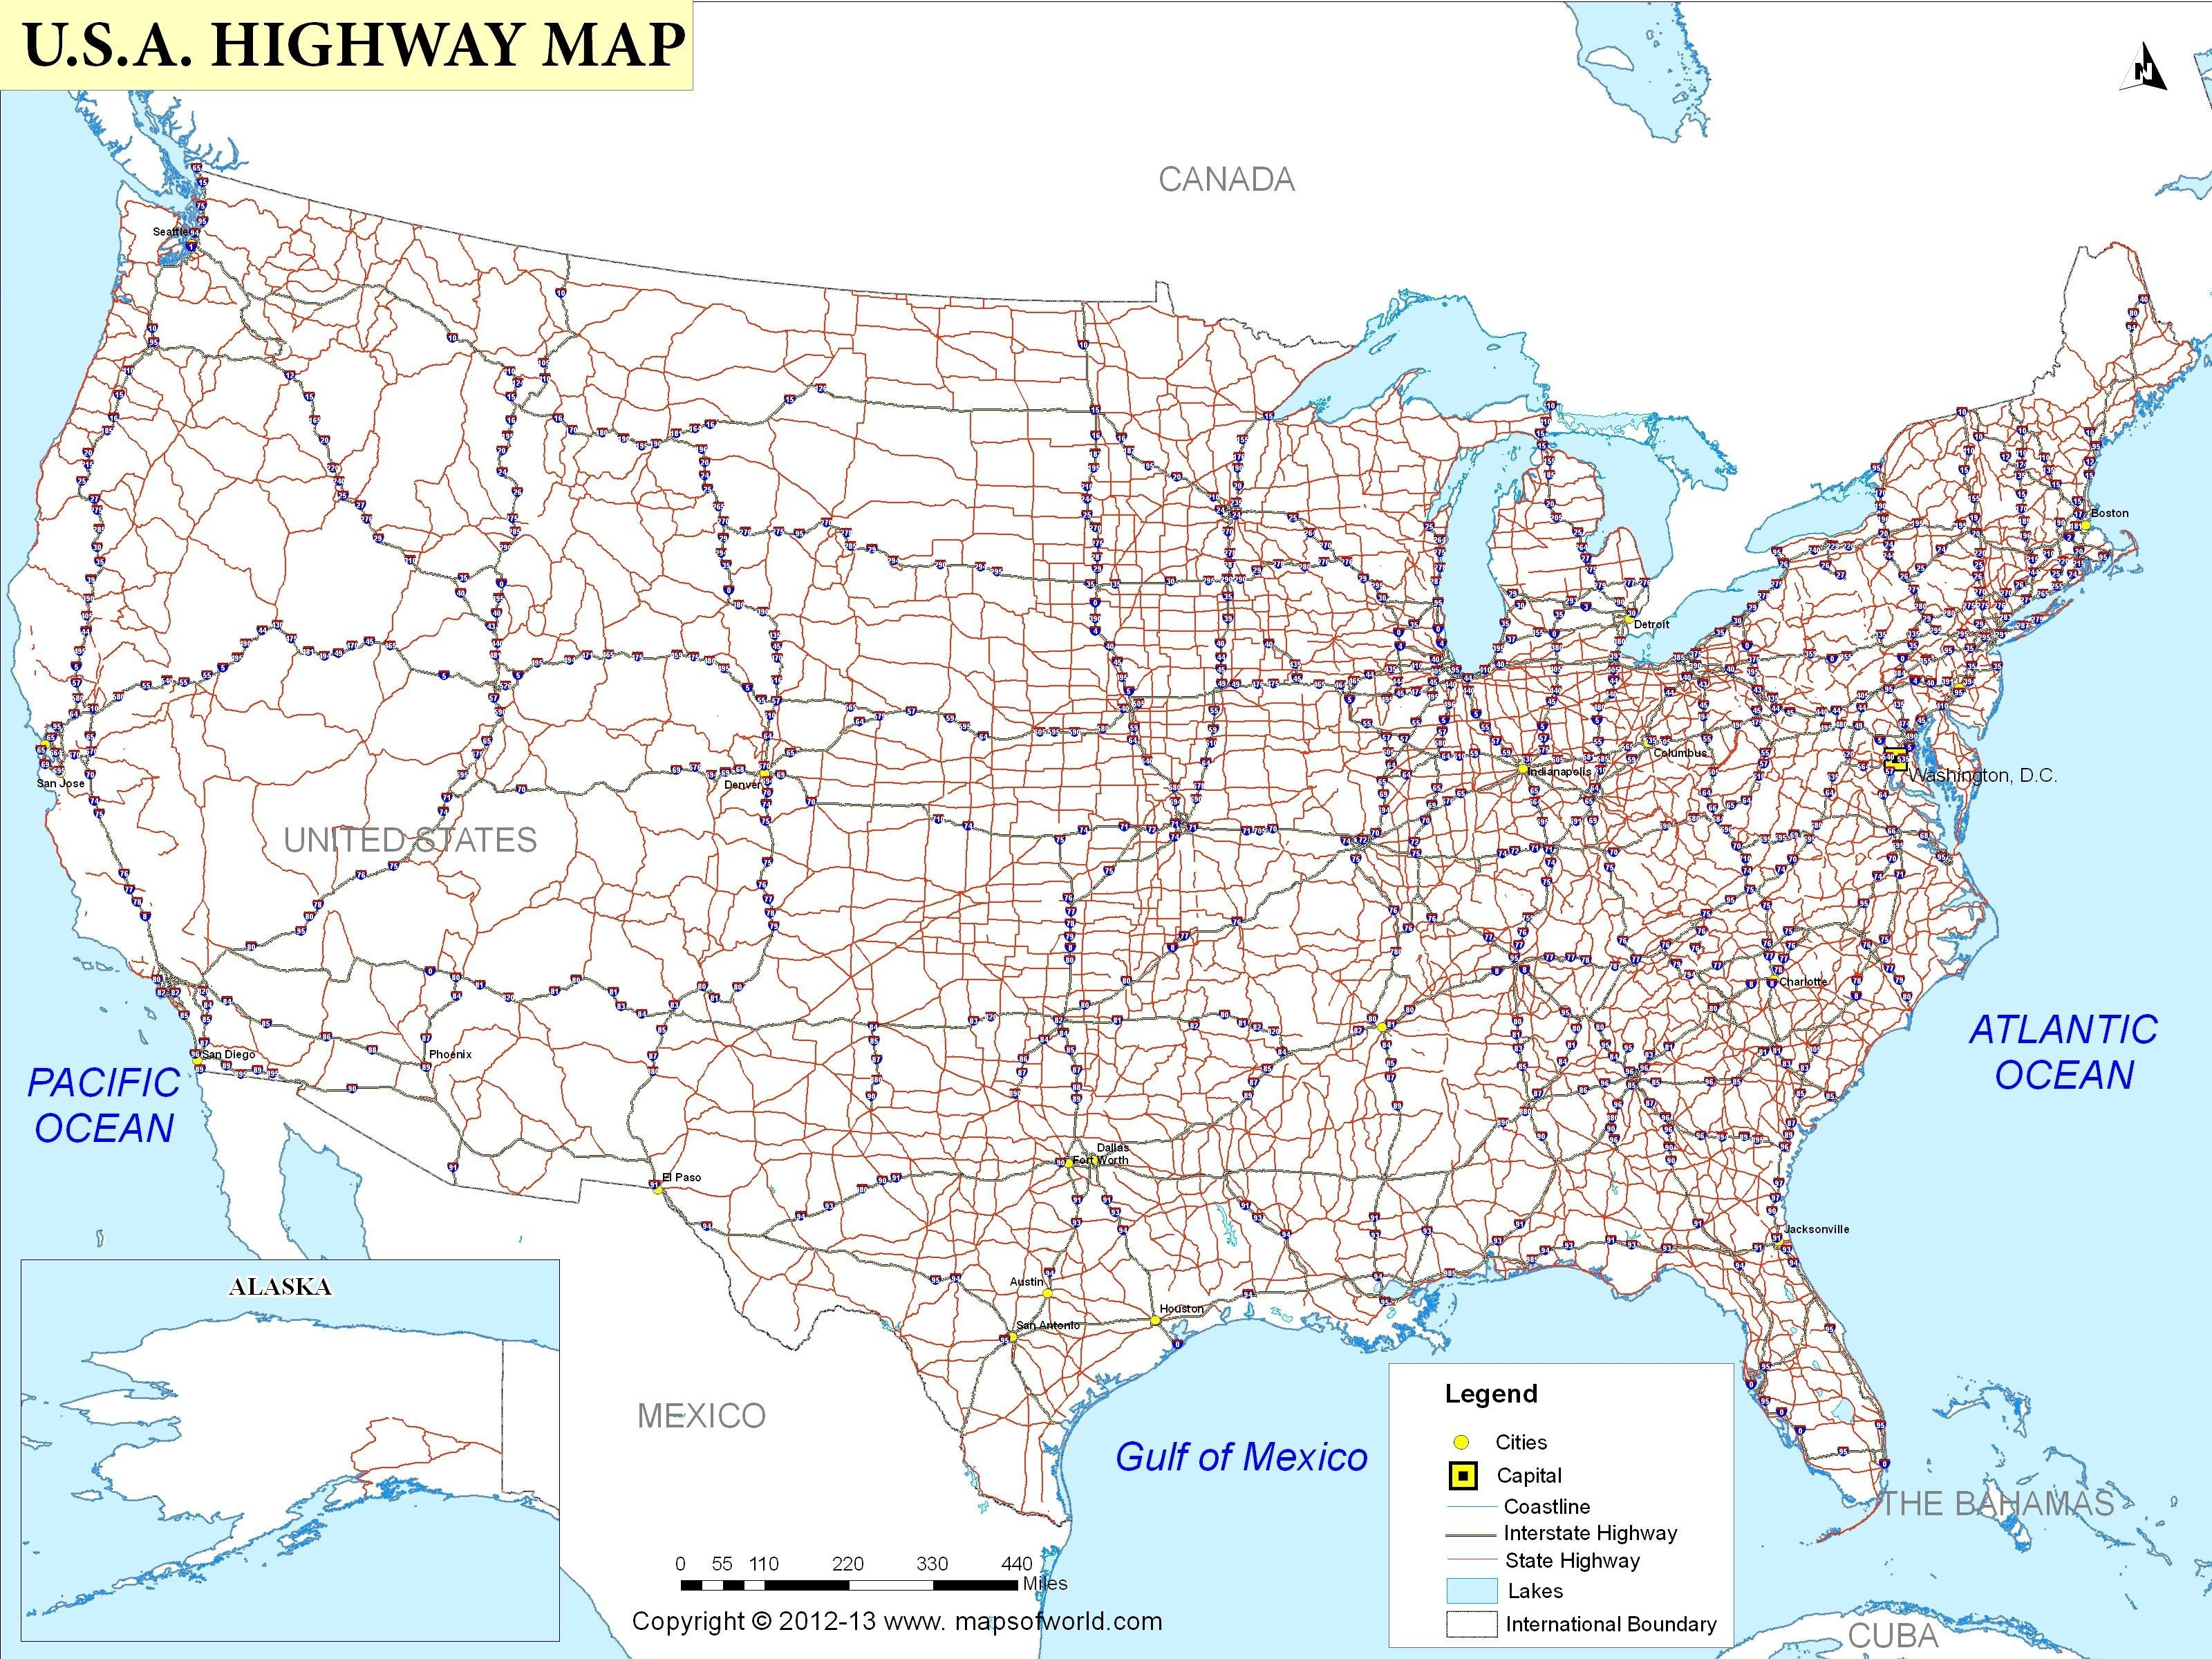 Free Printable Us Highway Map Usa Road Map Luxury United States Road - Free Printable Road Maps Of The United States